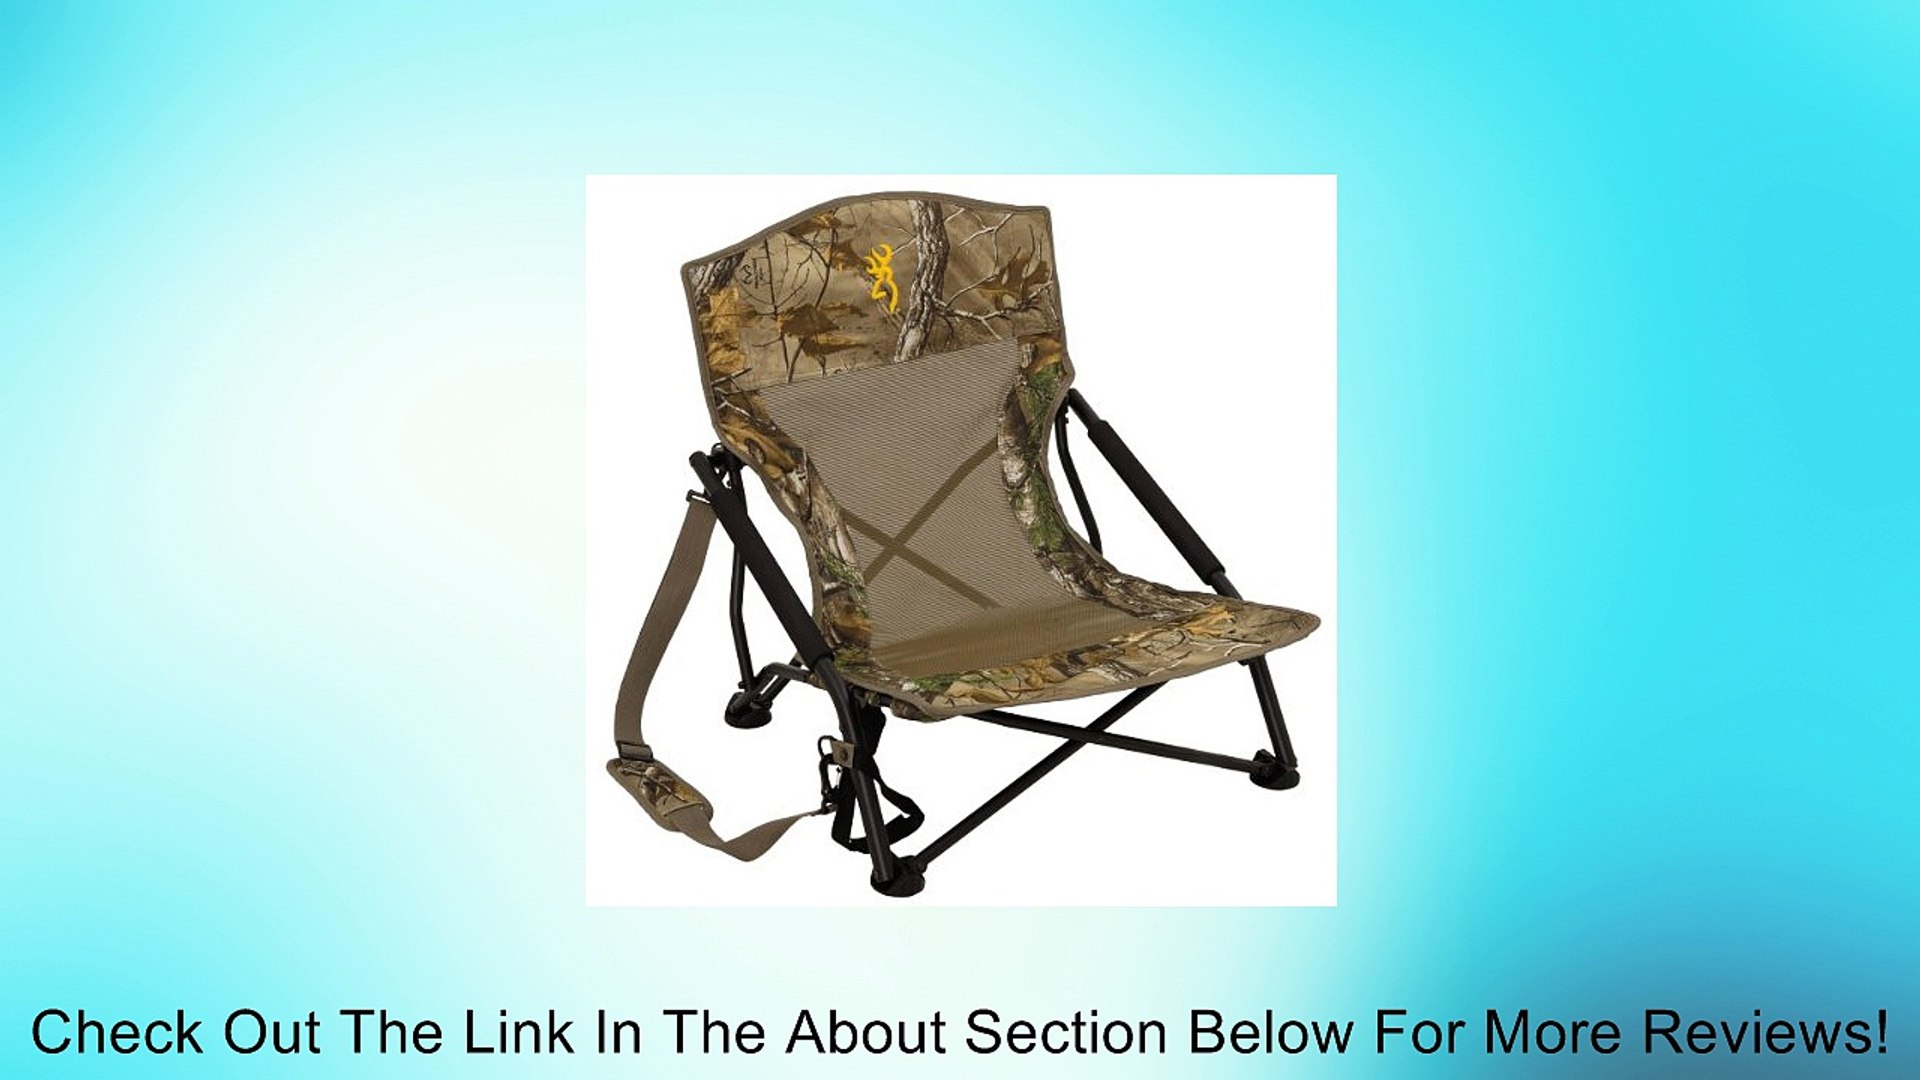 Marvelous Browning Camping 8525014 Strutter Folding Chair Review Inzonedesignstudio Interior Chair Design Inzonedesignstudiocom